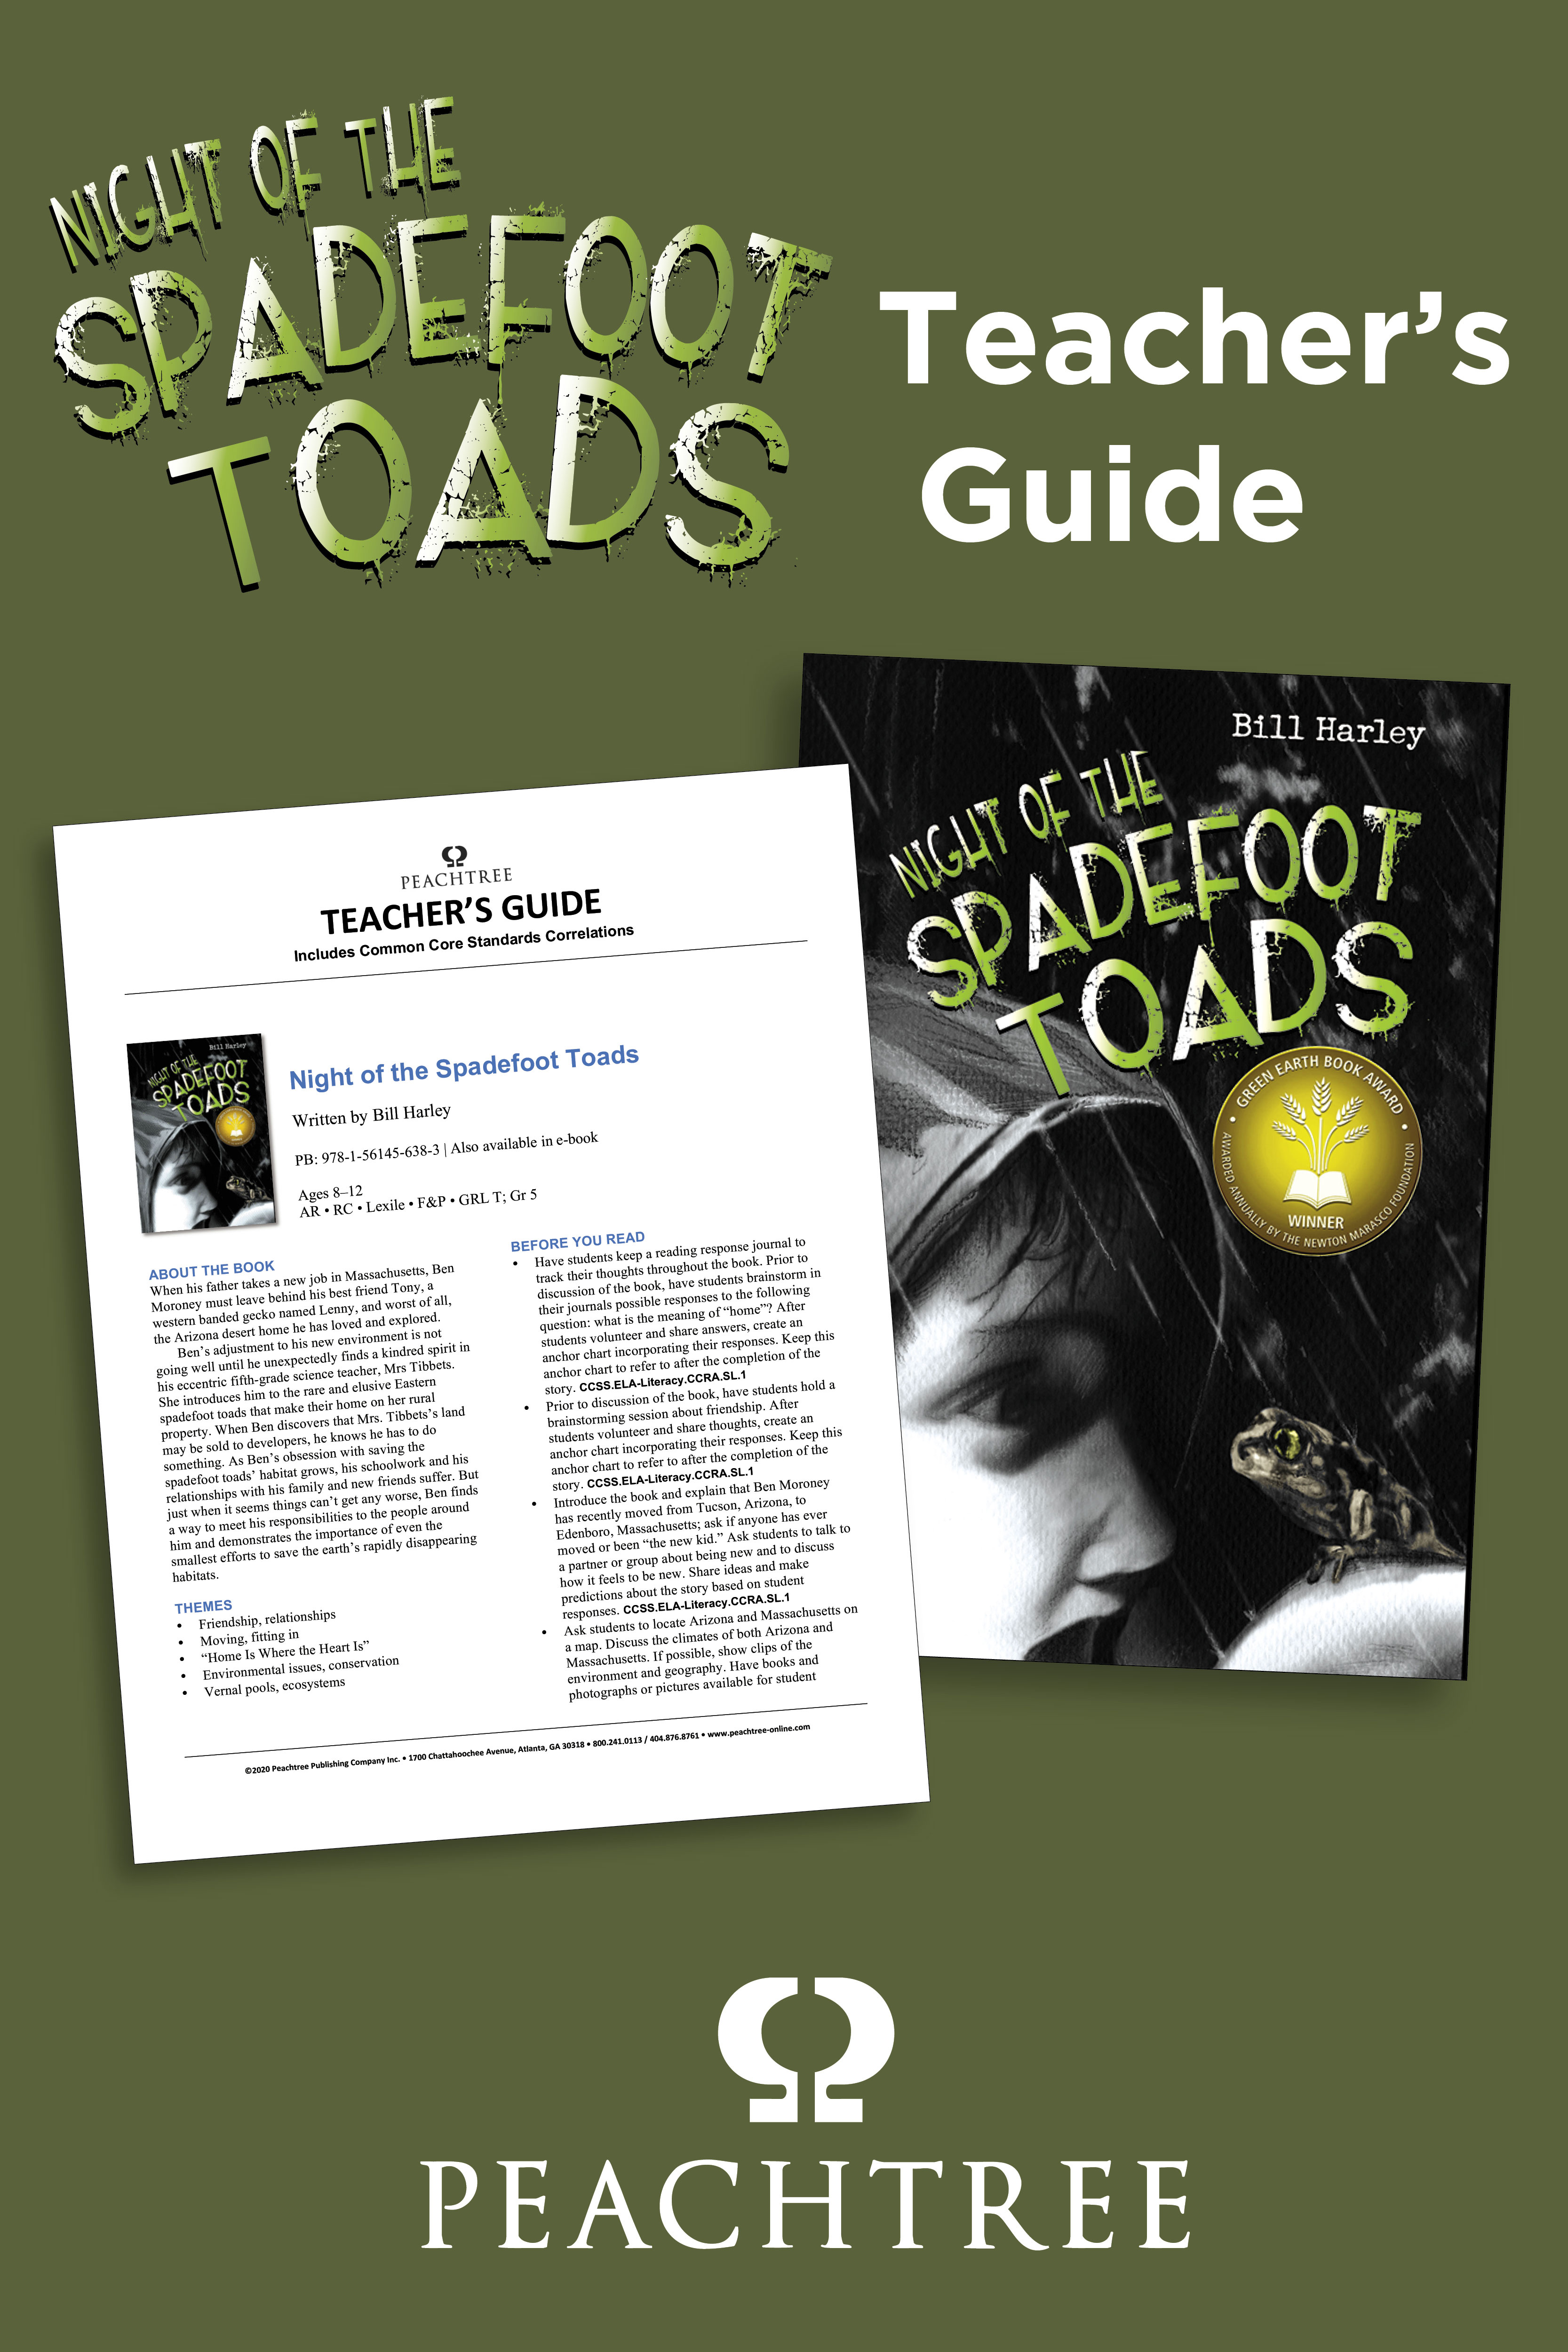 Night of the Spadefoot Toads Teacher's Guide